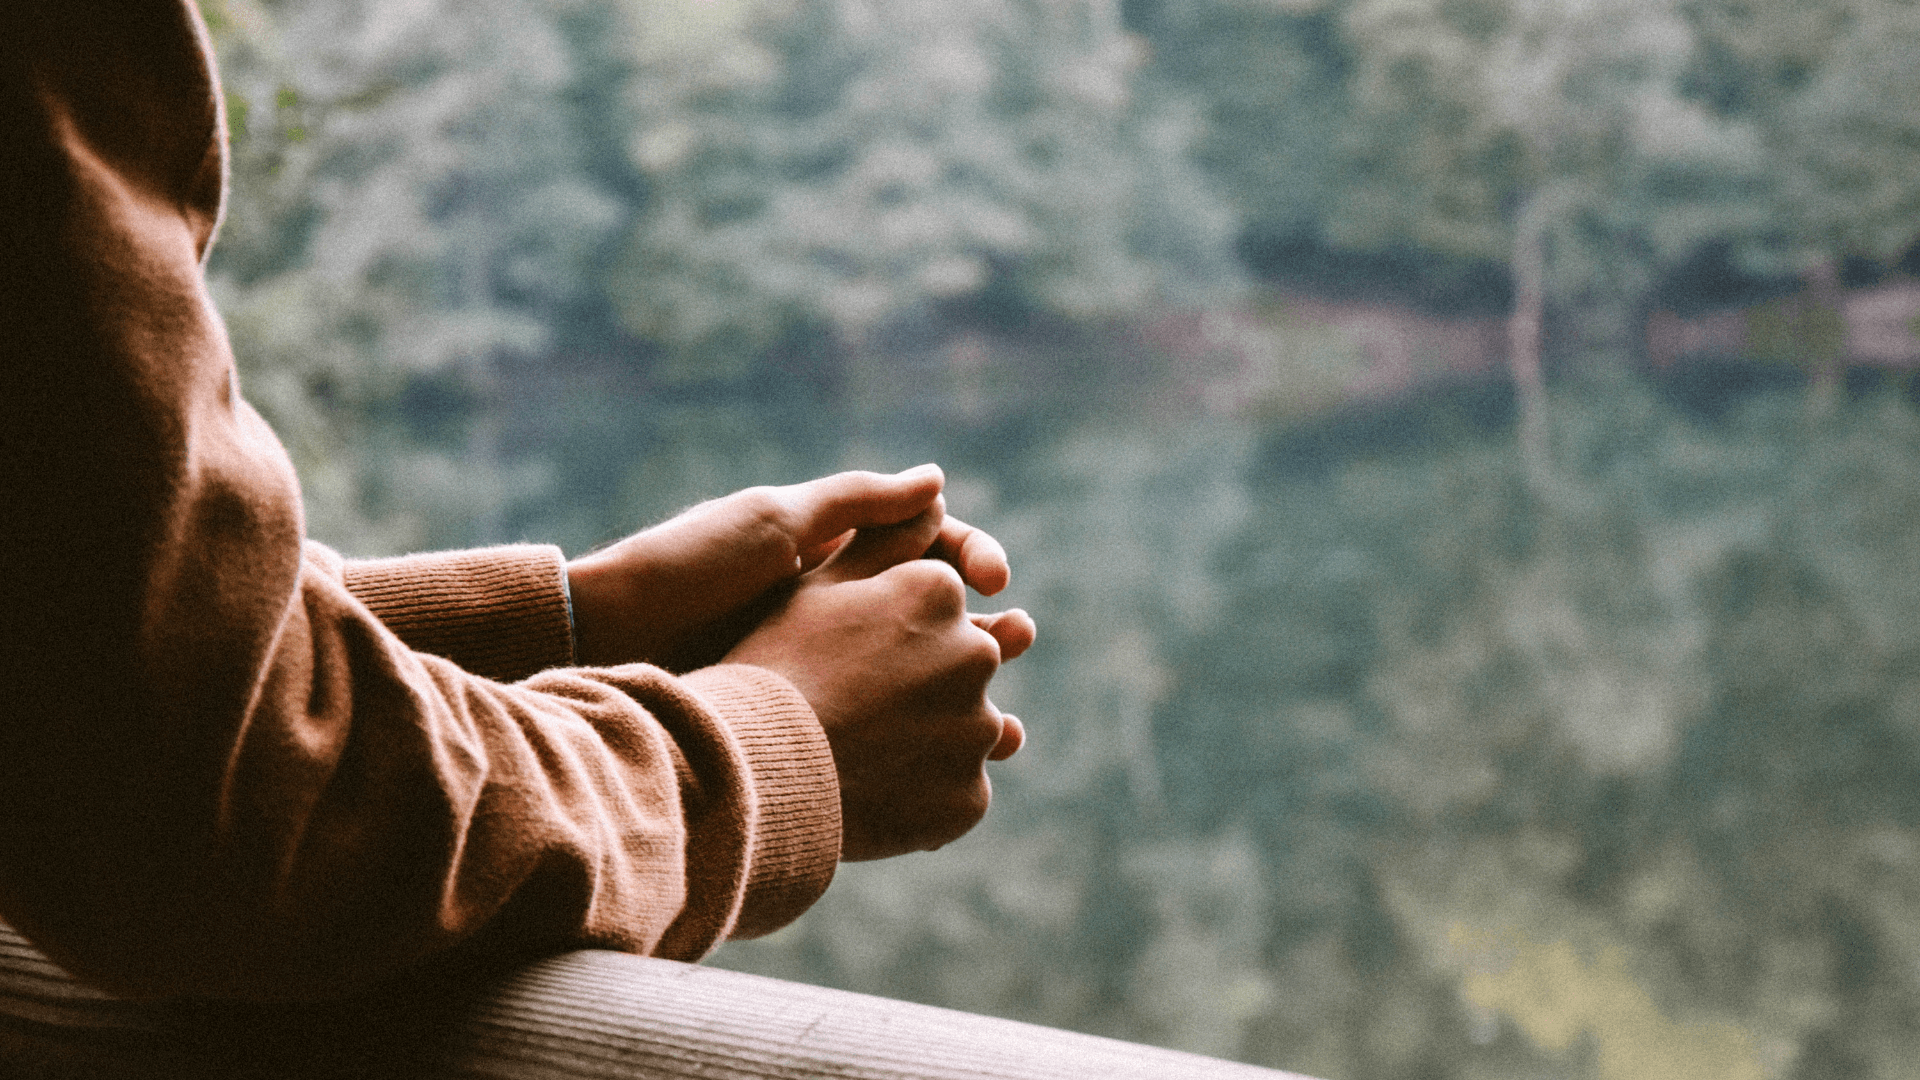 Hands resting on a railing overlooking a river